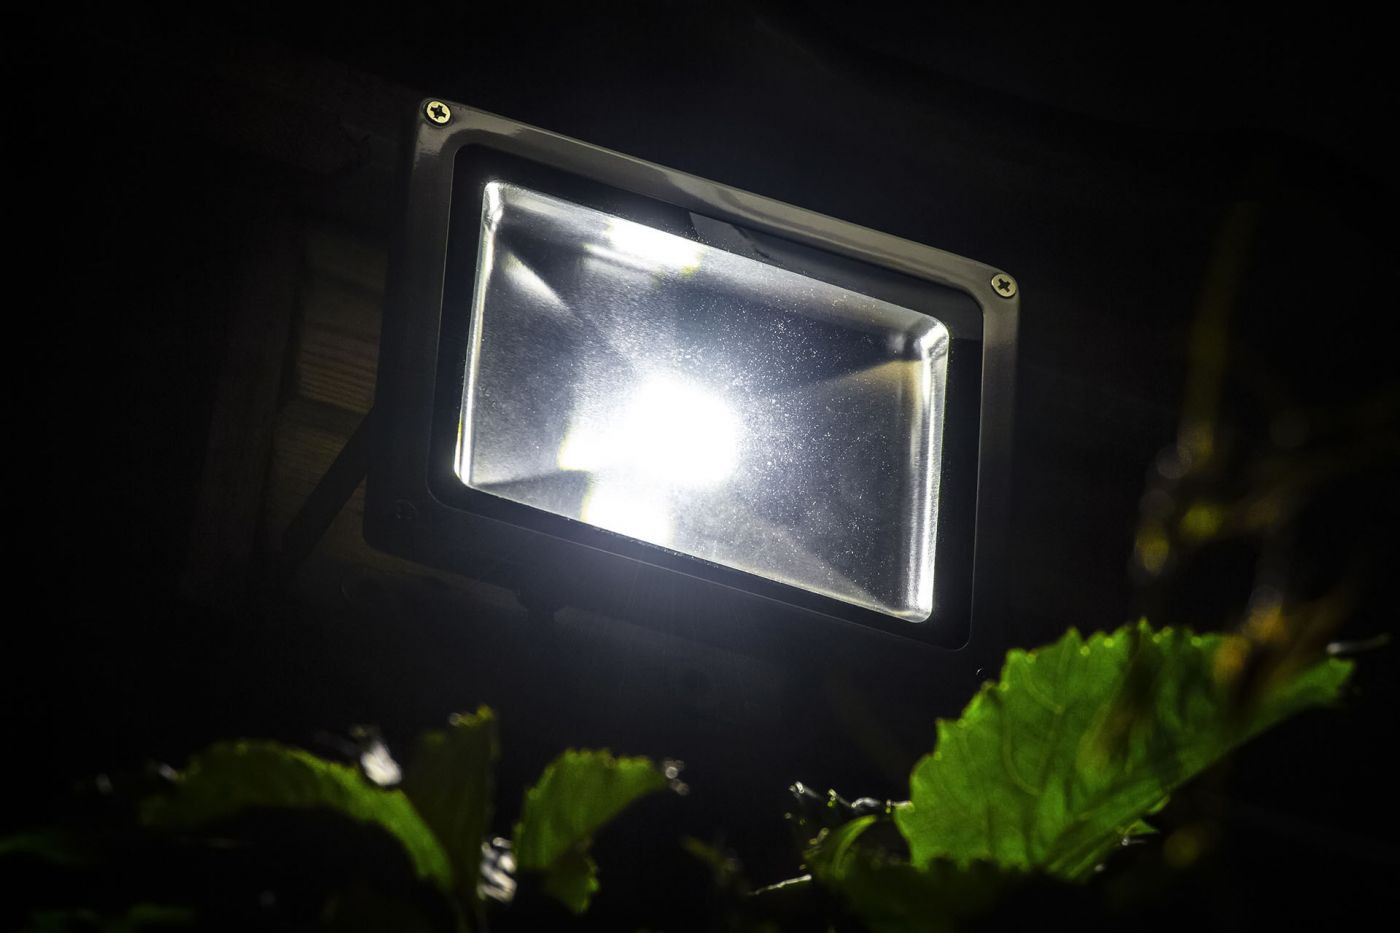 Is it Time to Replace Your Outdoor Lighting System with LEDs?